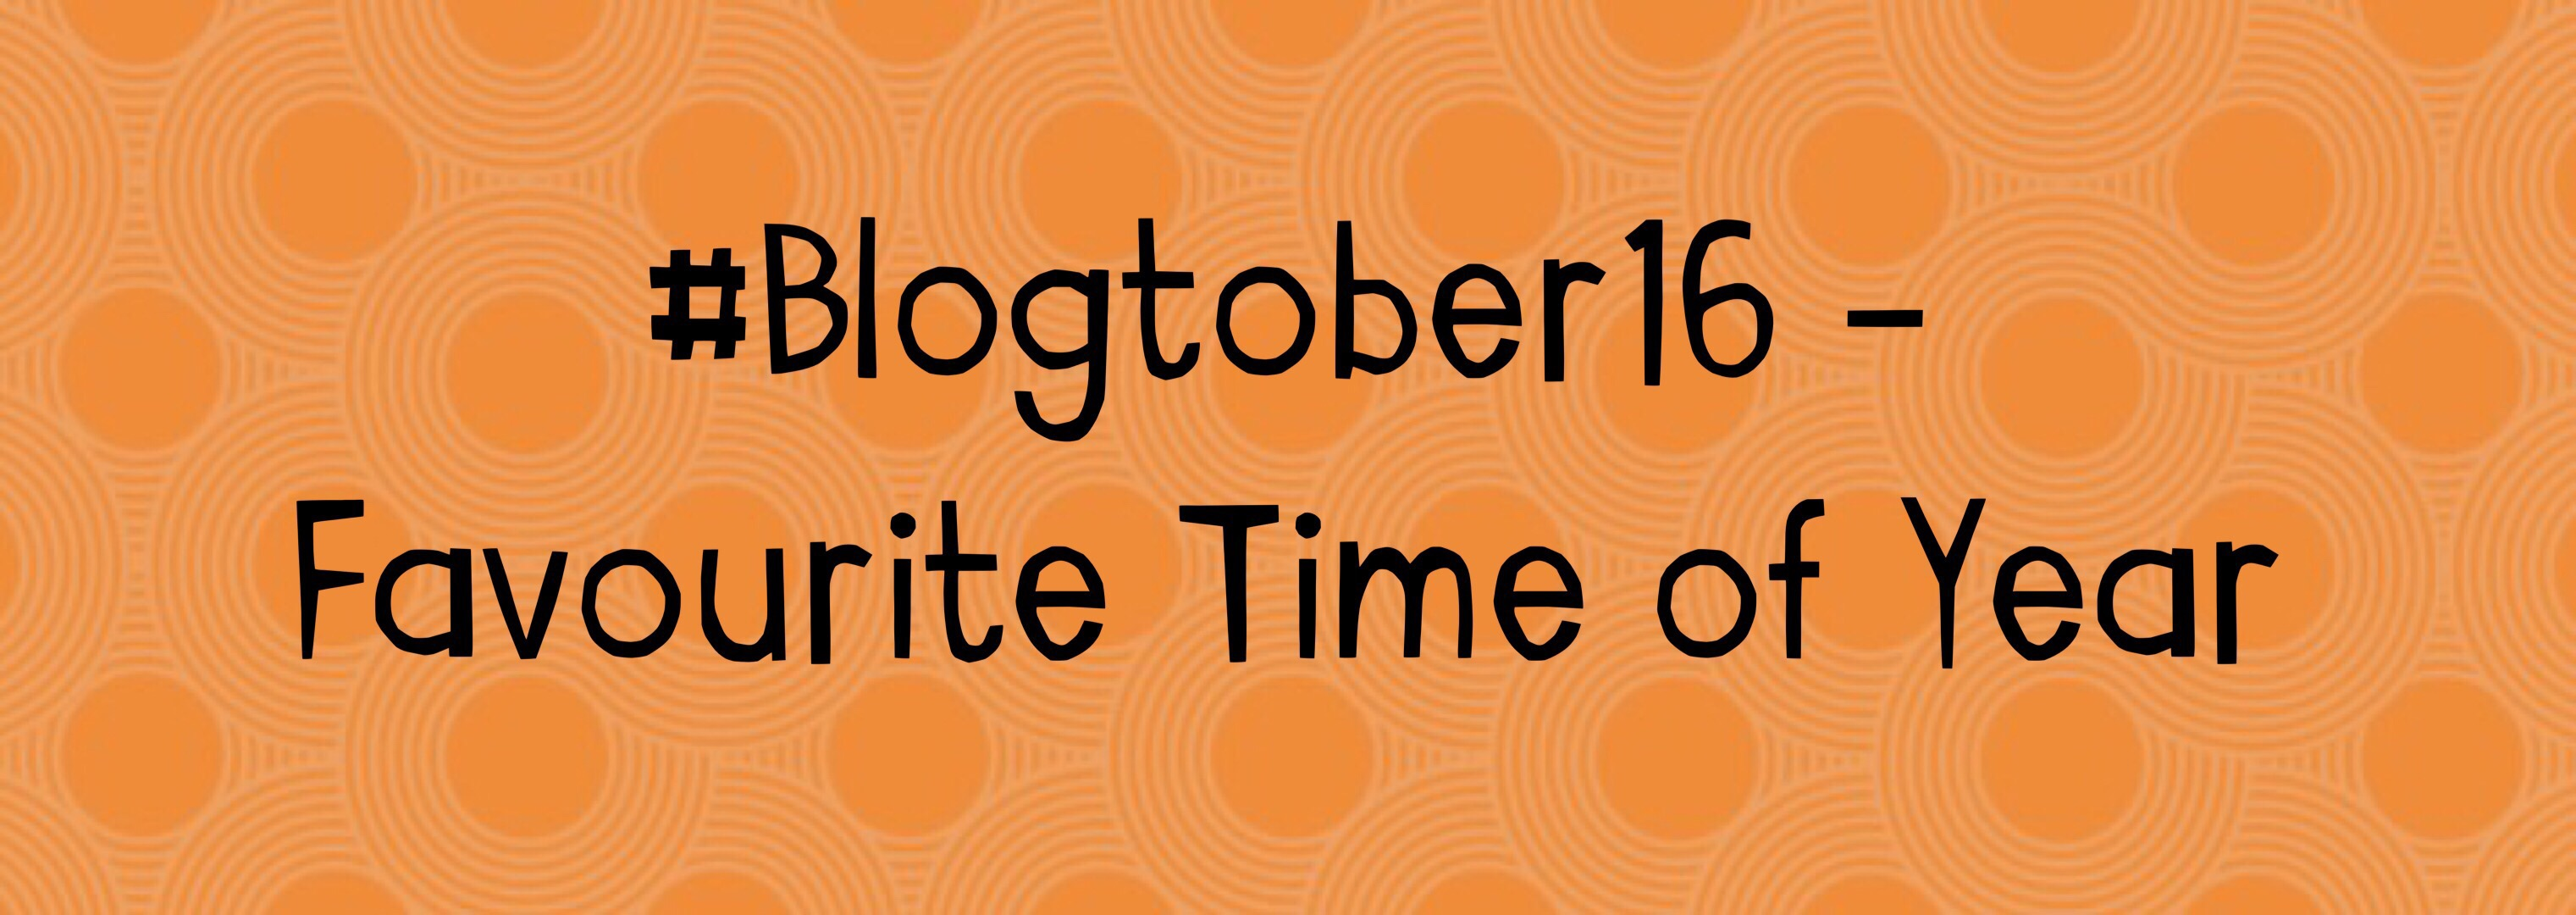 My Favourite Time of Year – #Blogtober16 Day 23